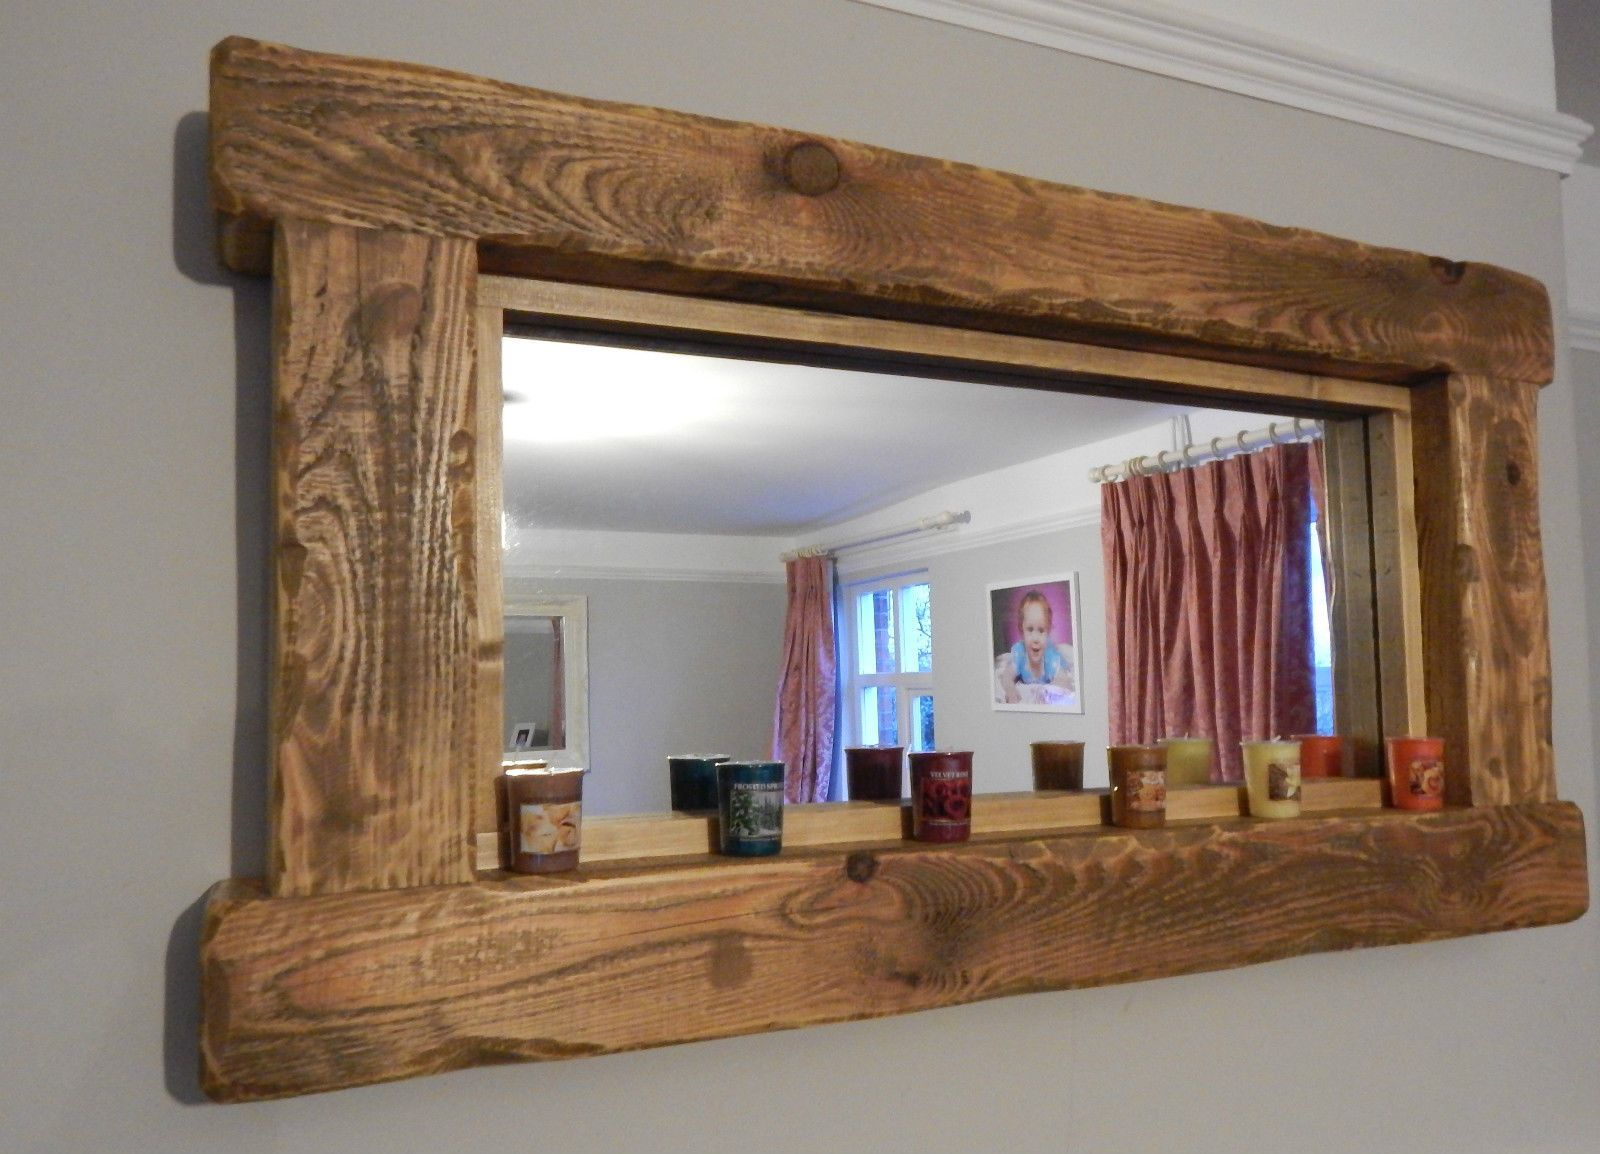 chunky rustic reclaimed wooden mirror tea light shelf wall furniture storage in home furniture diy home decor mirrors - Home Decor Mirrors